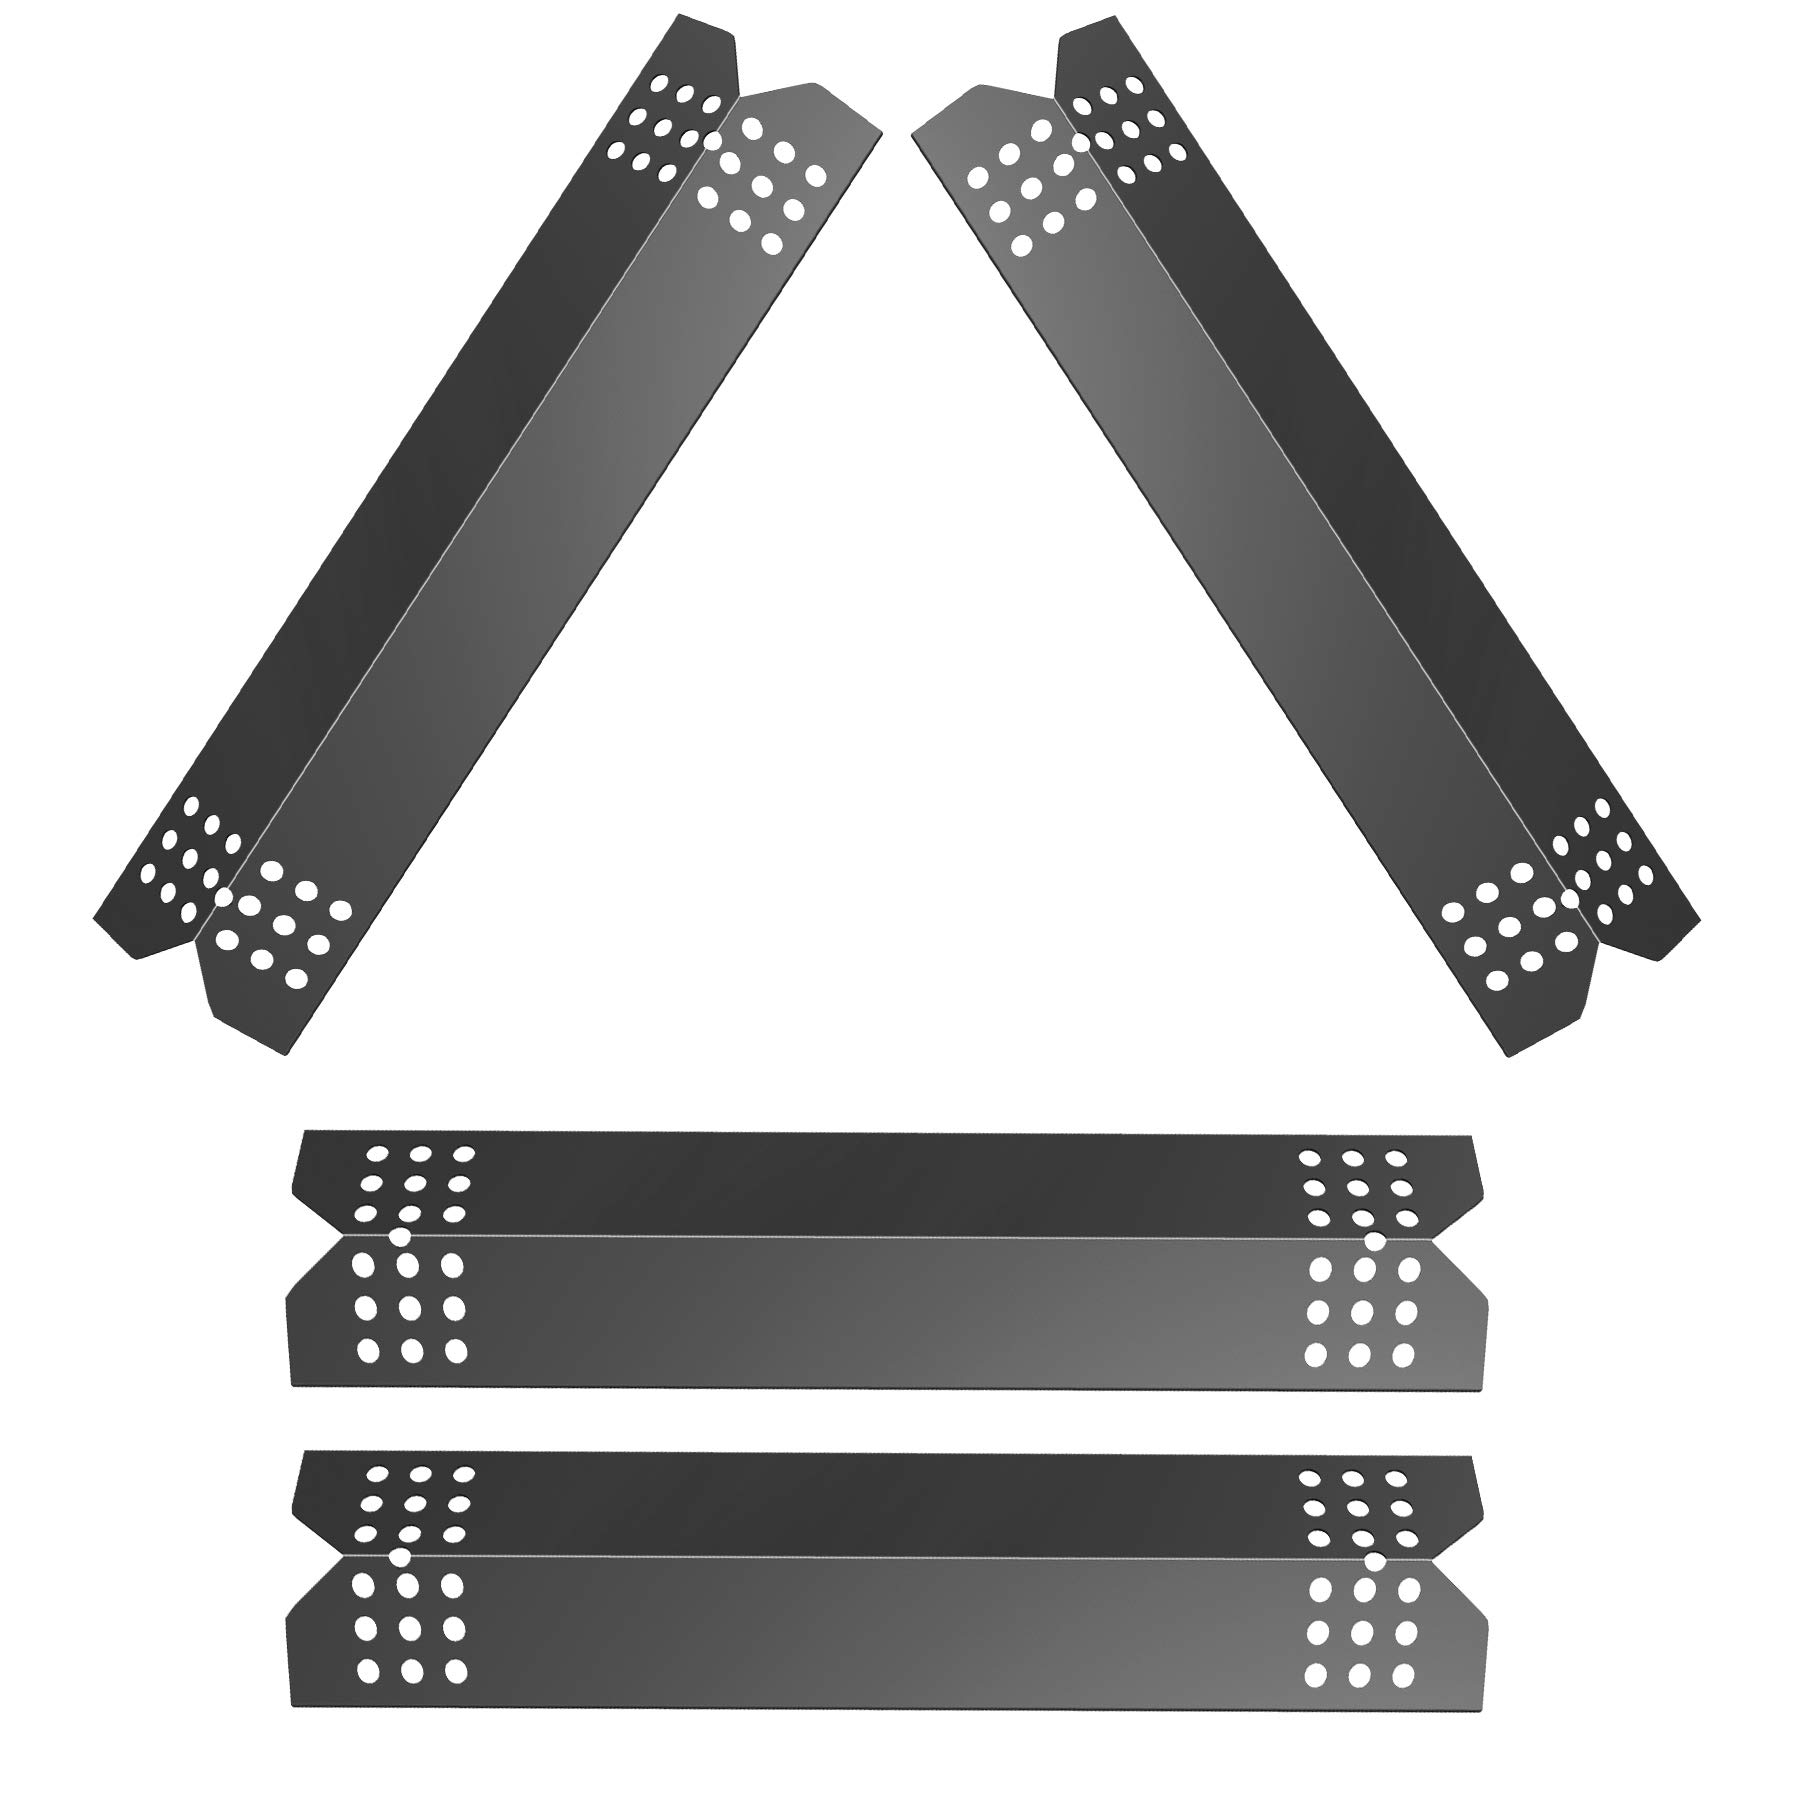 GASPRO 4-Pack Grill Flame Tamer for Nexgrill Replacement Parts 720-0830h 720-0783e, 14 9/16 x 3 3/8'' Heat Plate for Grill Master 720-0697 720-0737 Grill Parts,Kenmore Heat Shield Tent BBQ Burner Cover